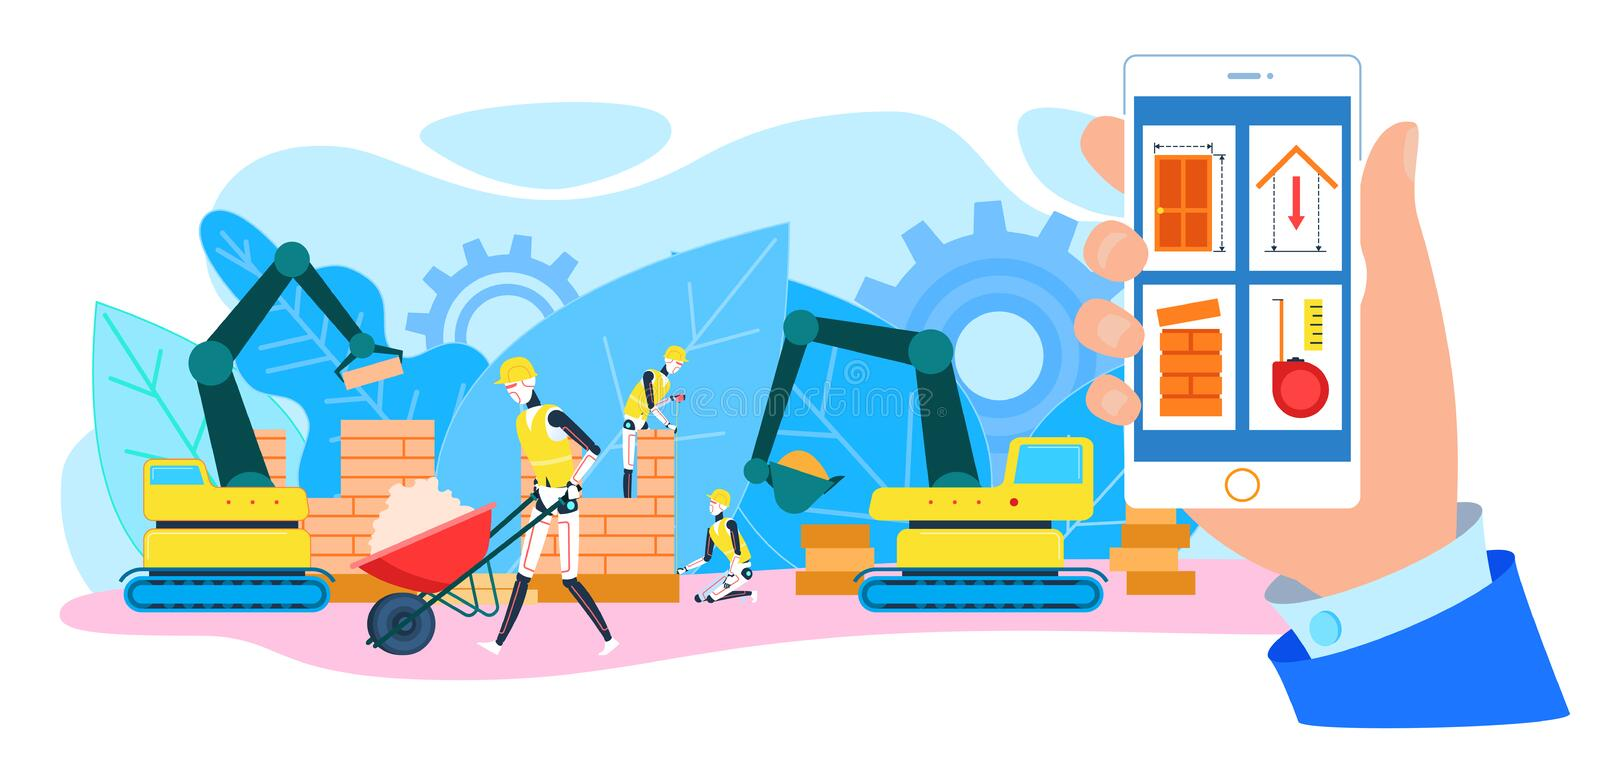 Remote Control Robot Builder at Construction Site. Robot Builders at Construction Site. Human Hand with Smartphone. Remote Control. Service Robots Helpers stock illustration